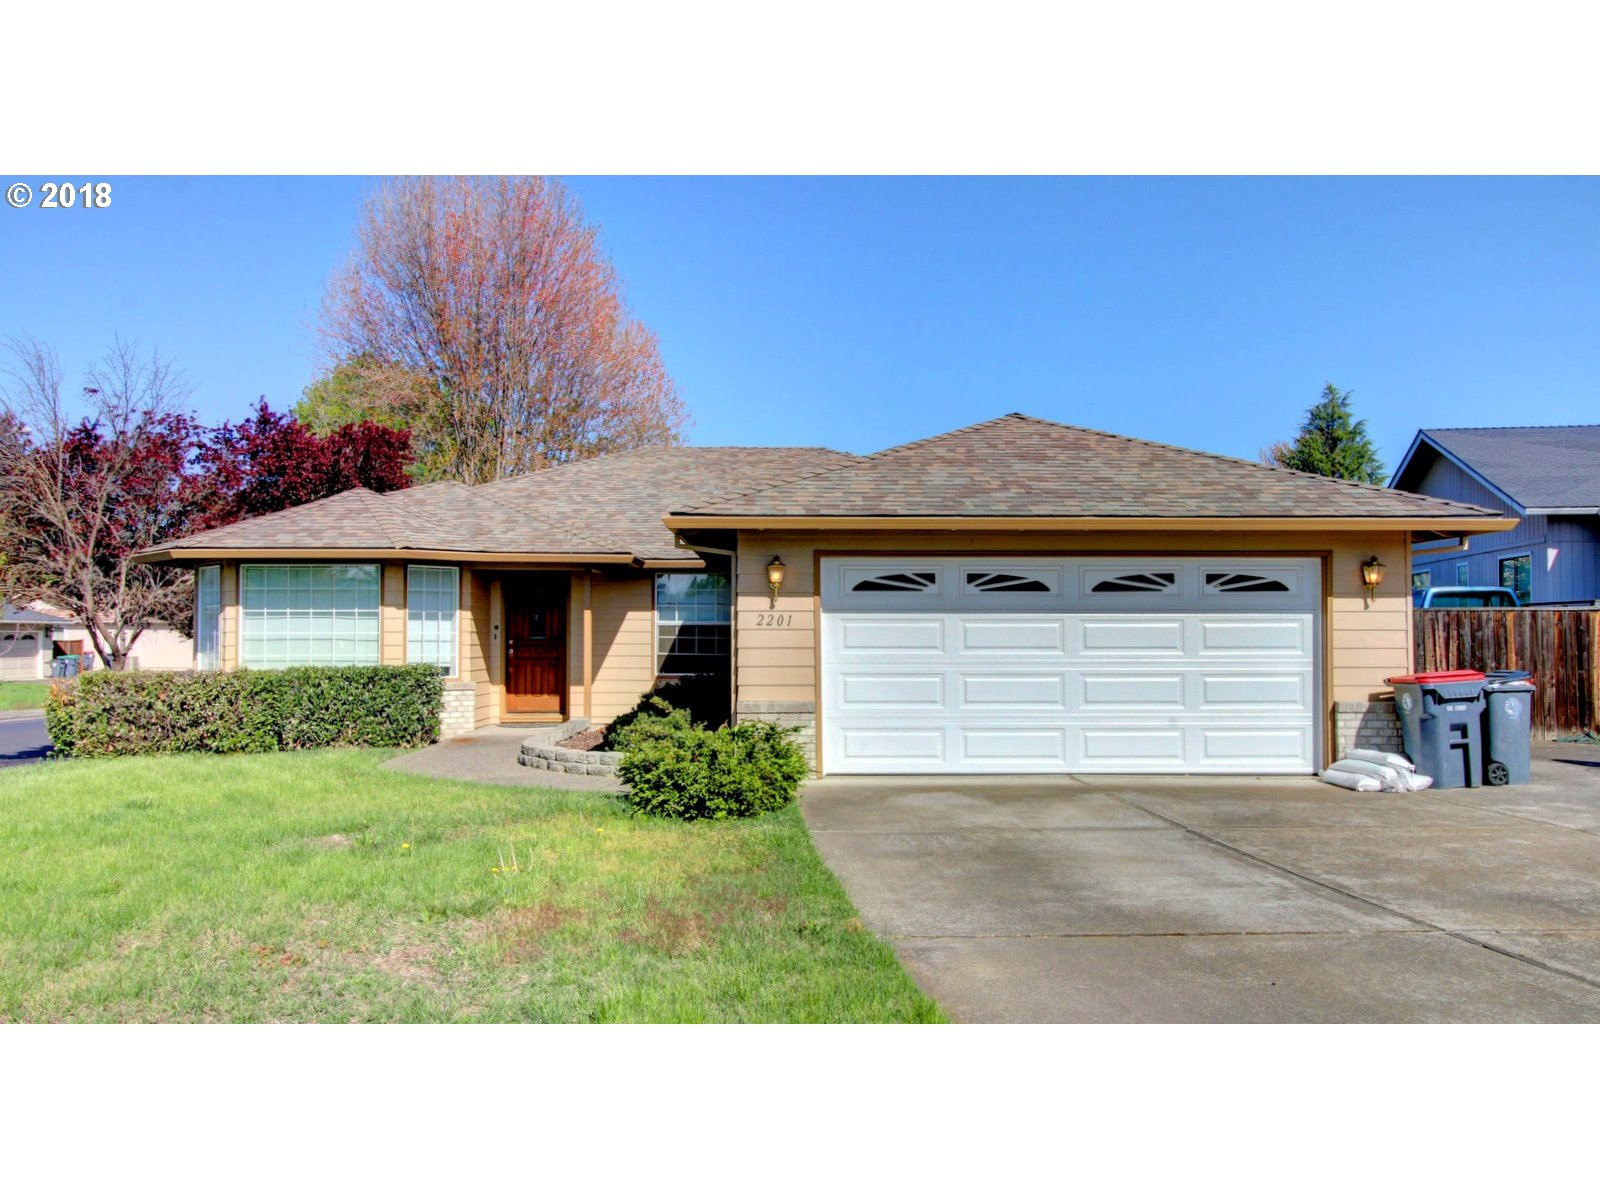 Medford, OR 3 Bedroom Home For Sale